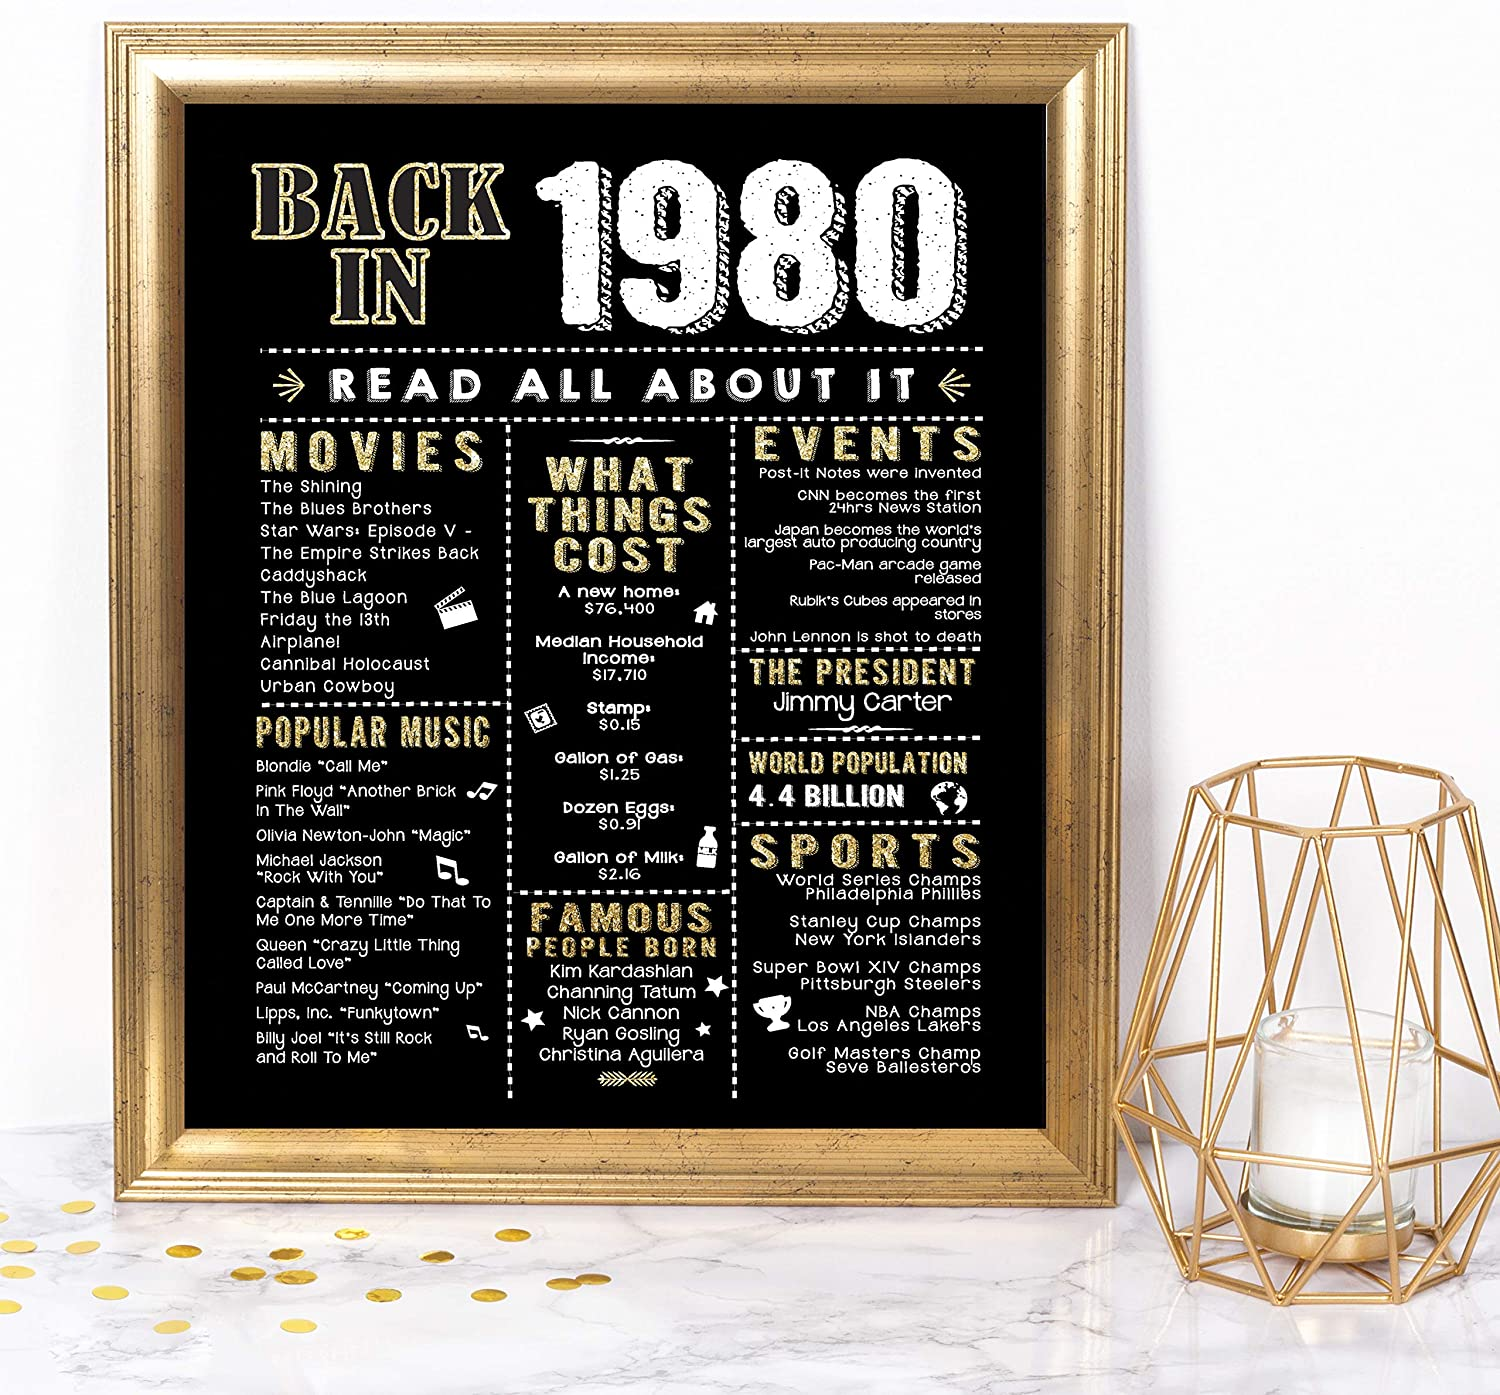 Katie Doodle 80s Party Decorations Supplies Decor Centerpiece for 80's Theme - Includes 8x10 Back in 1980 Sign [Unframed], Black Gold